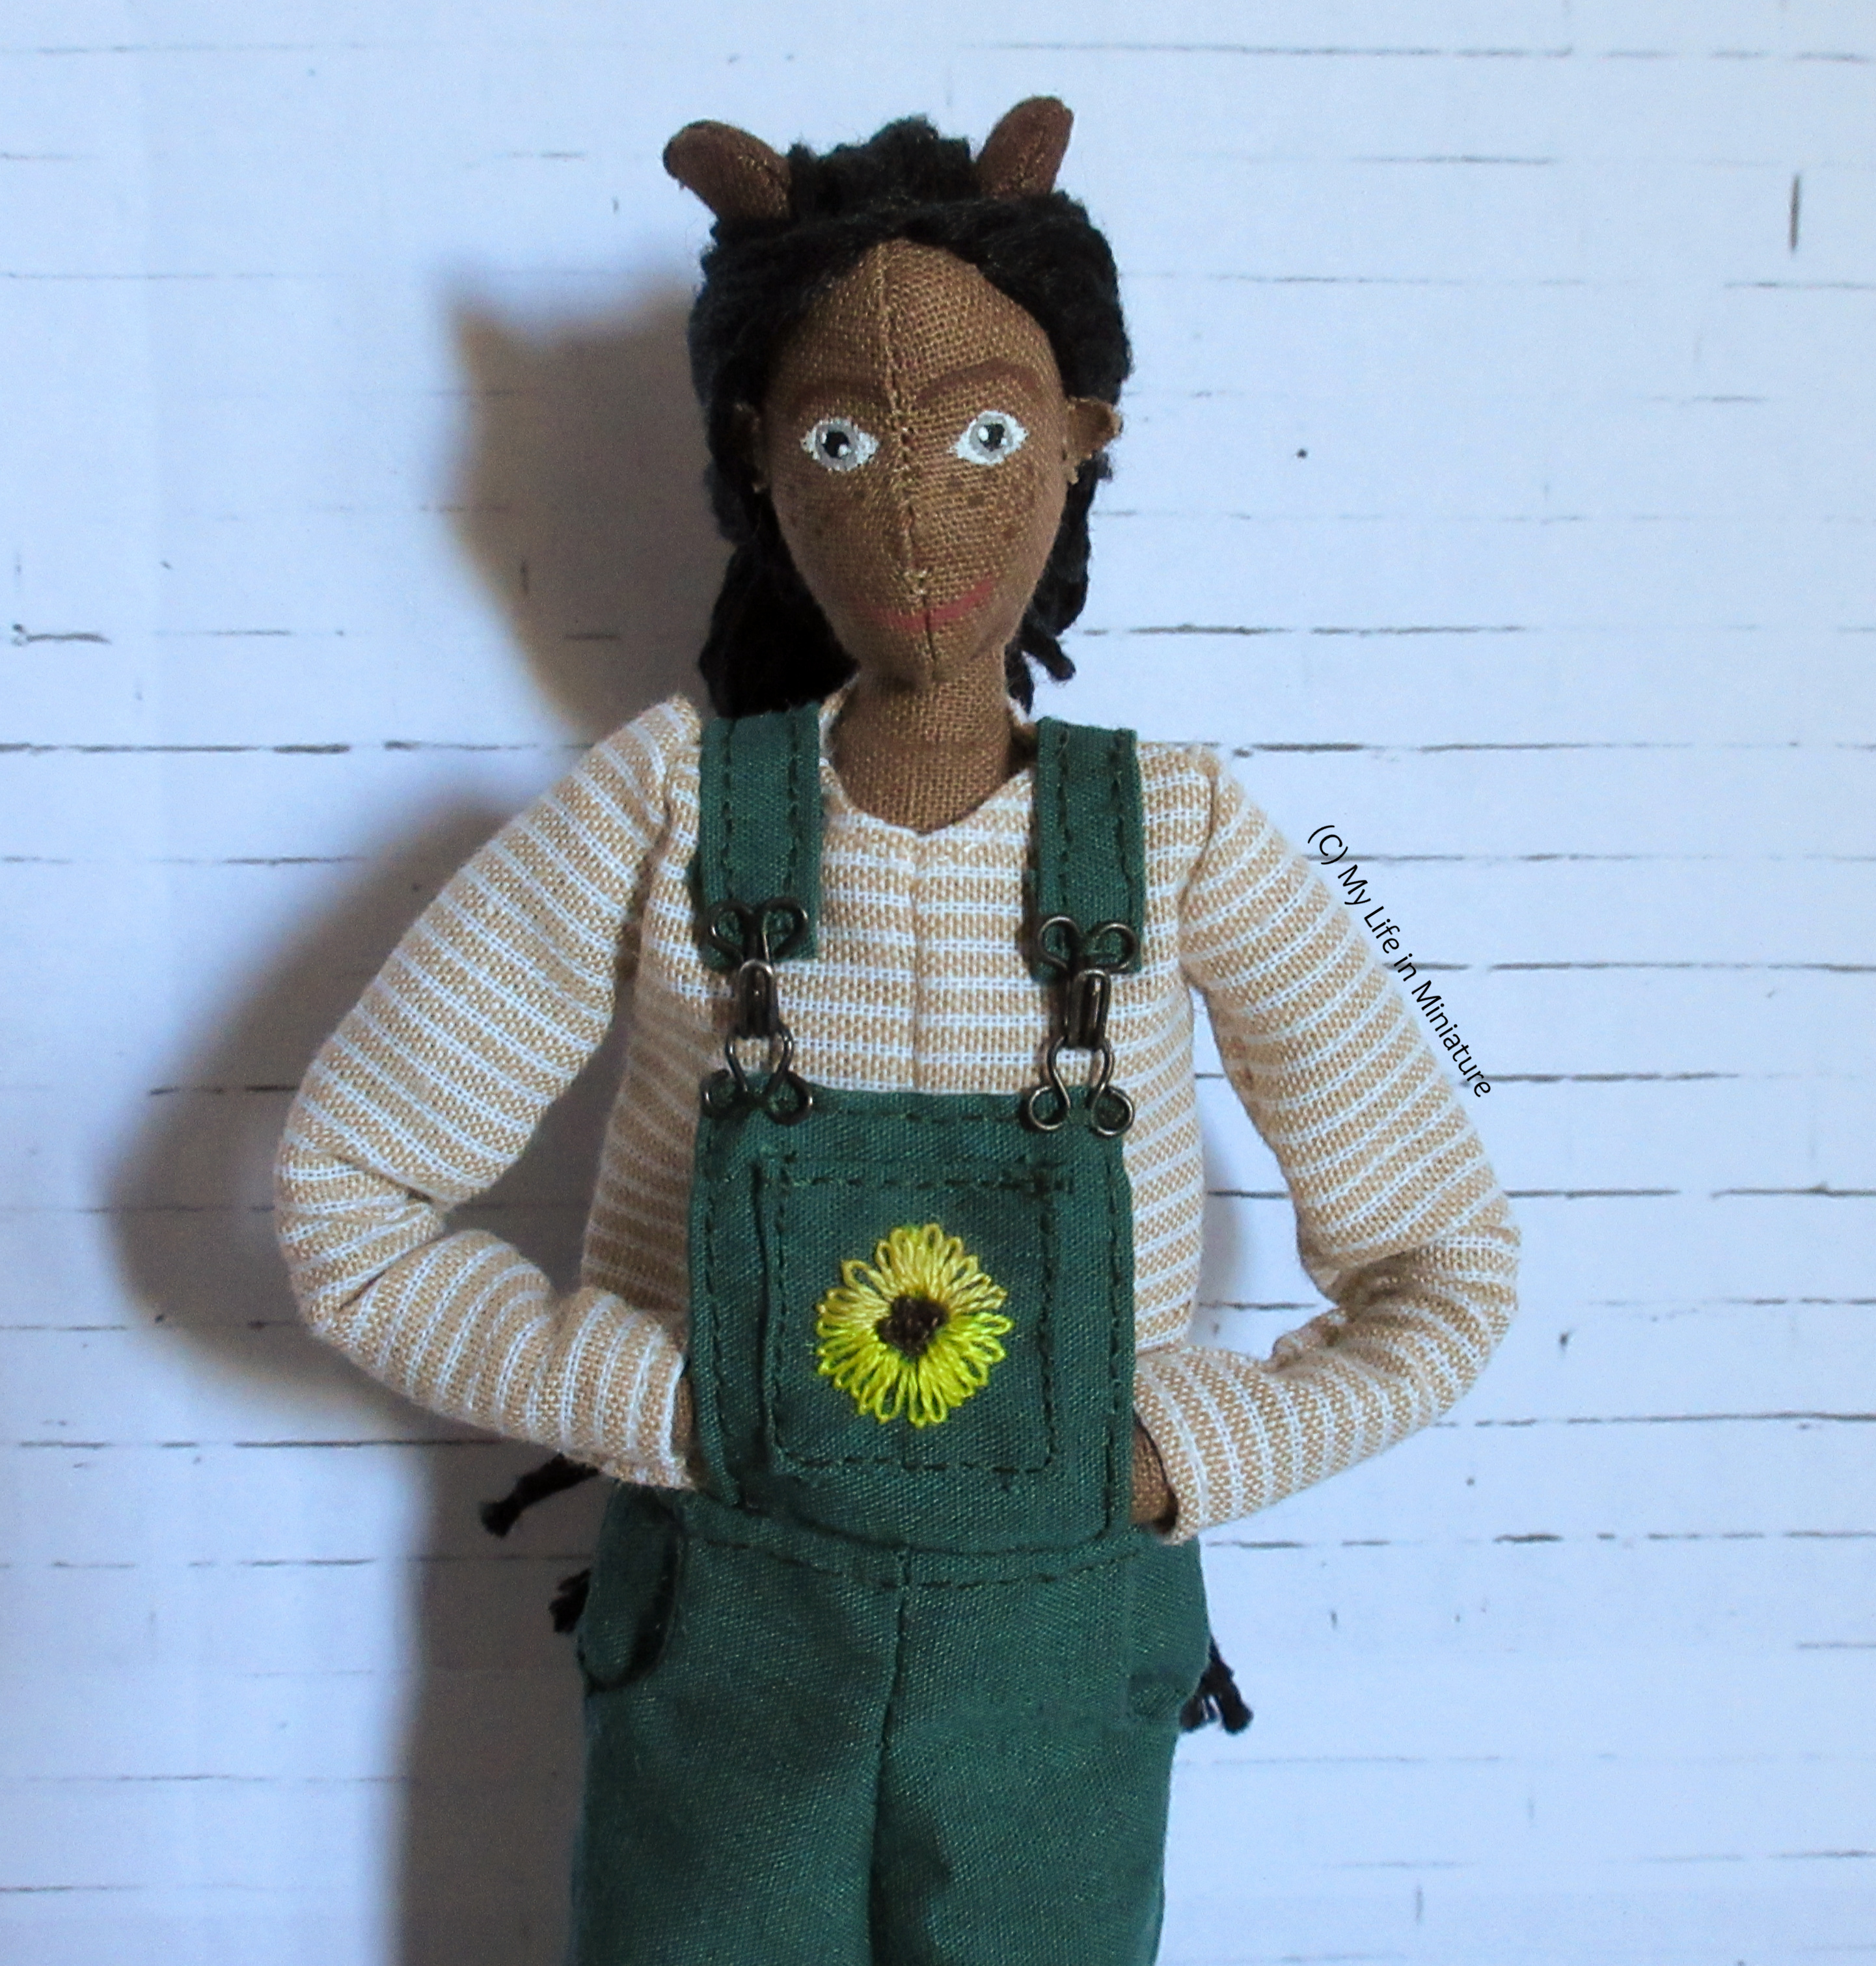 Petra wears the long-sleeved top under her green dungarees, with her hands behind the front bib. She looks at the camera.